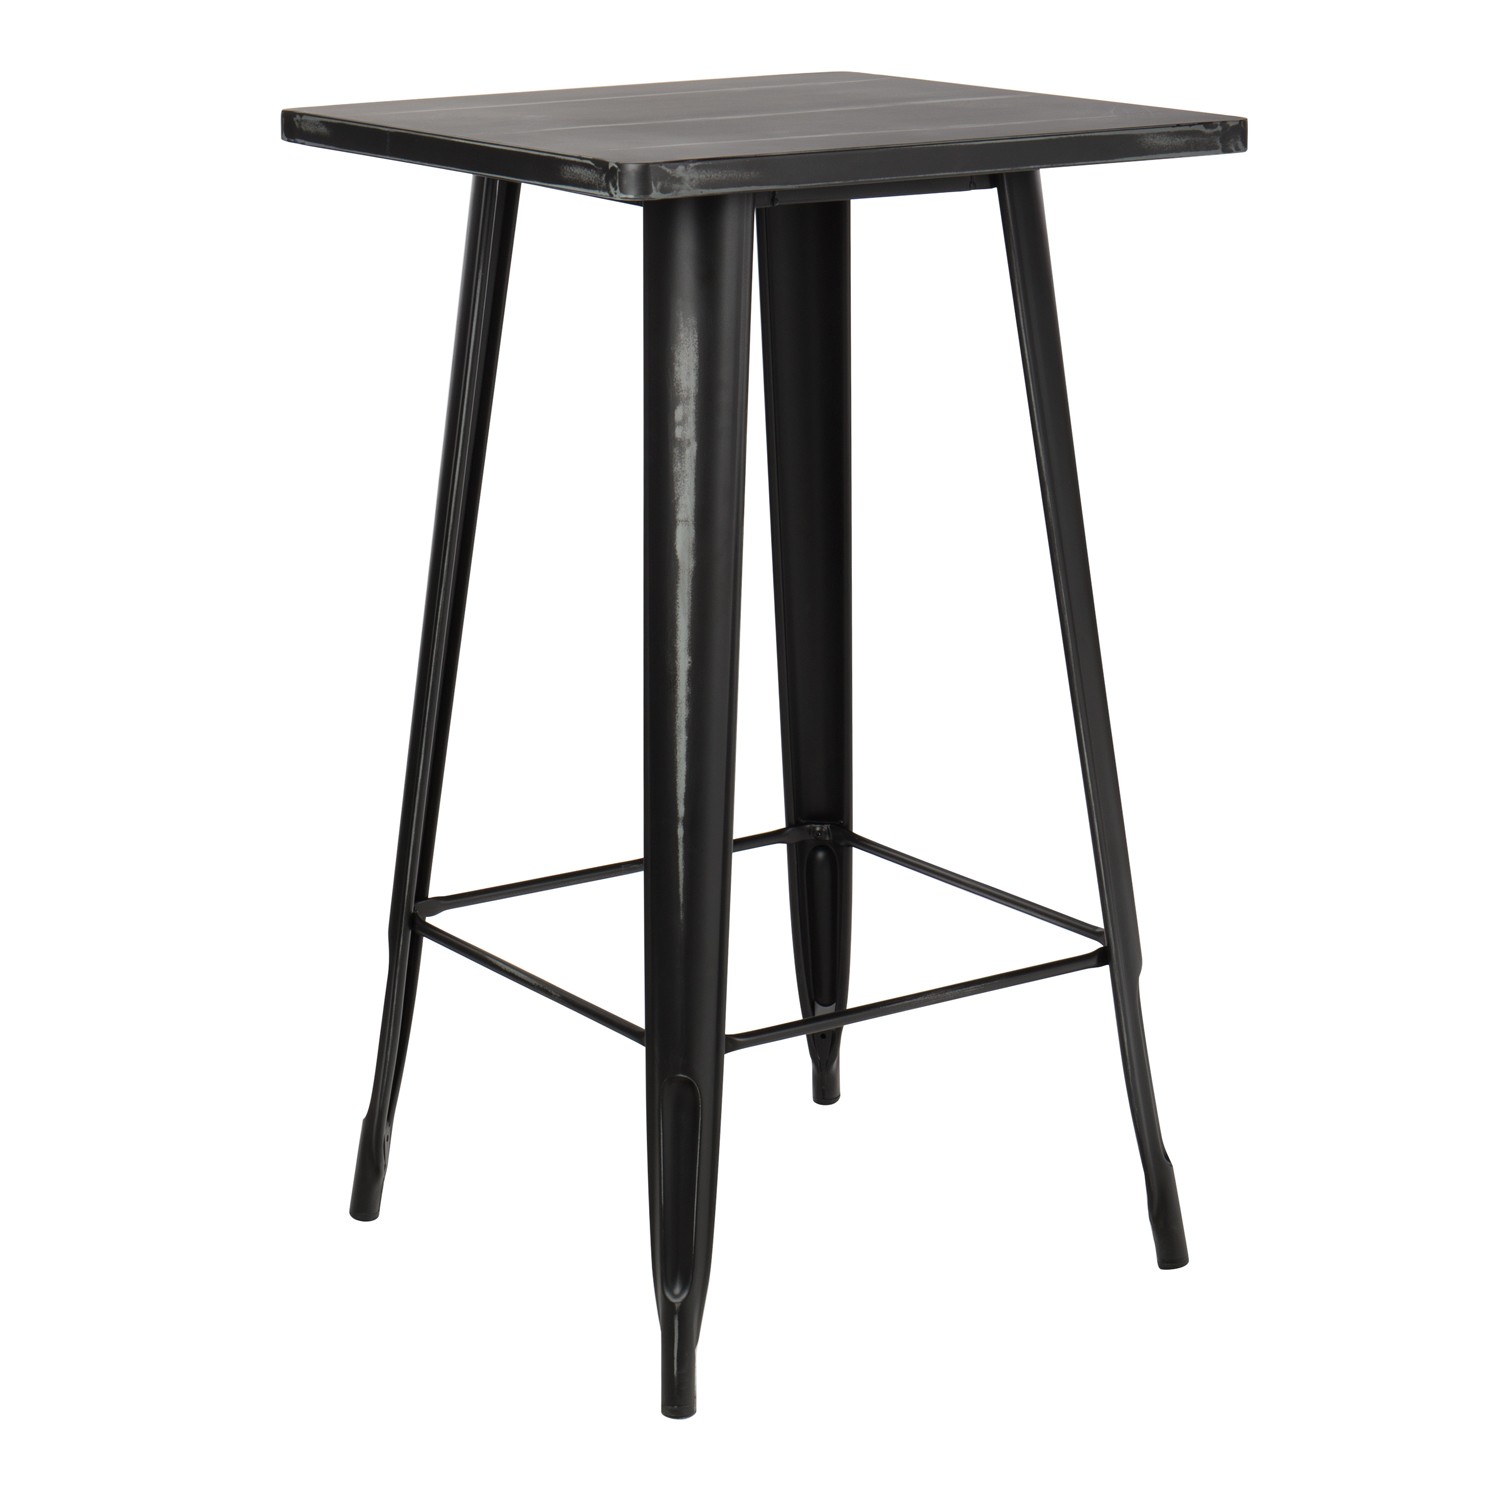 Vintage LIX High Table, gallery image 1